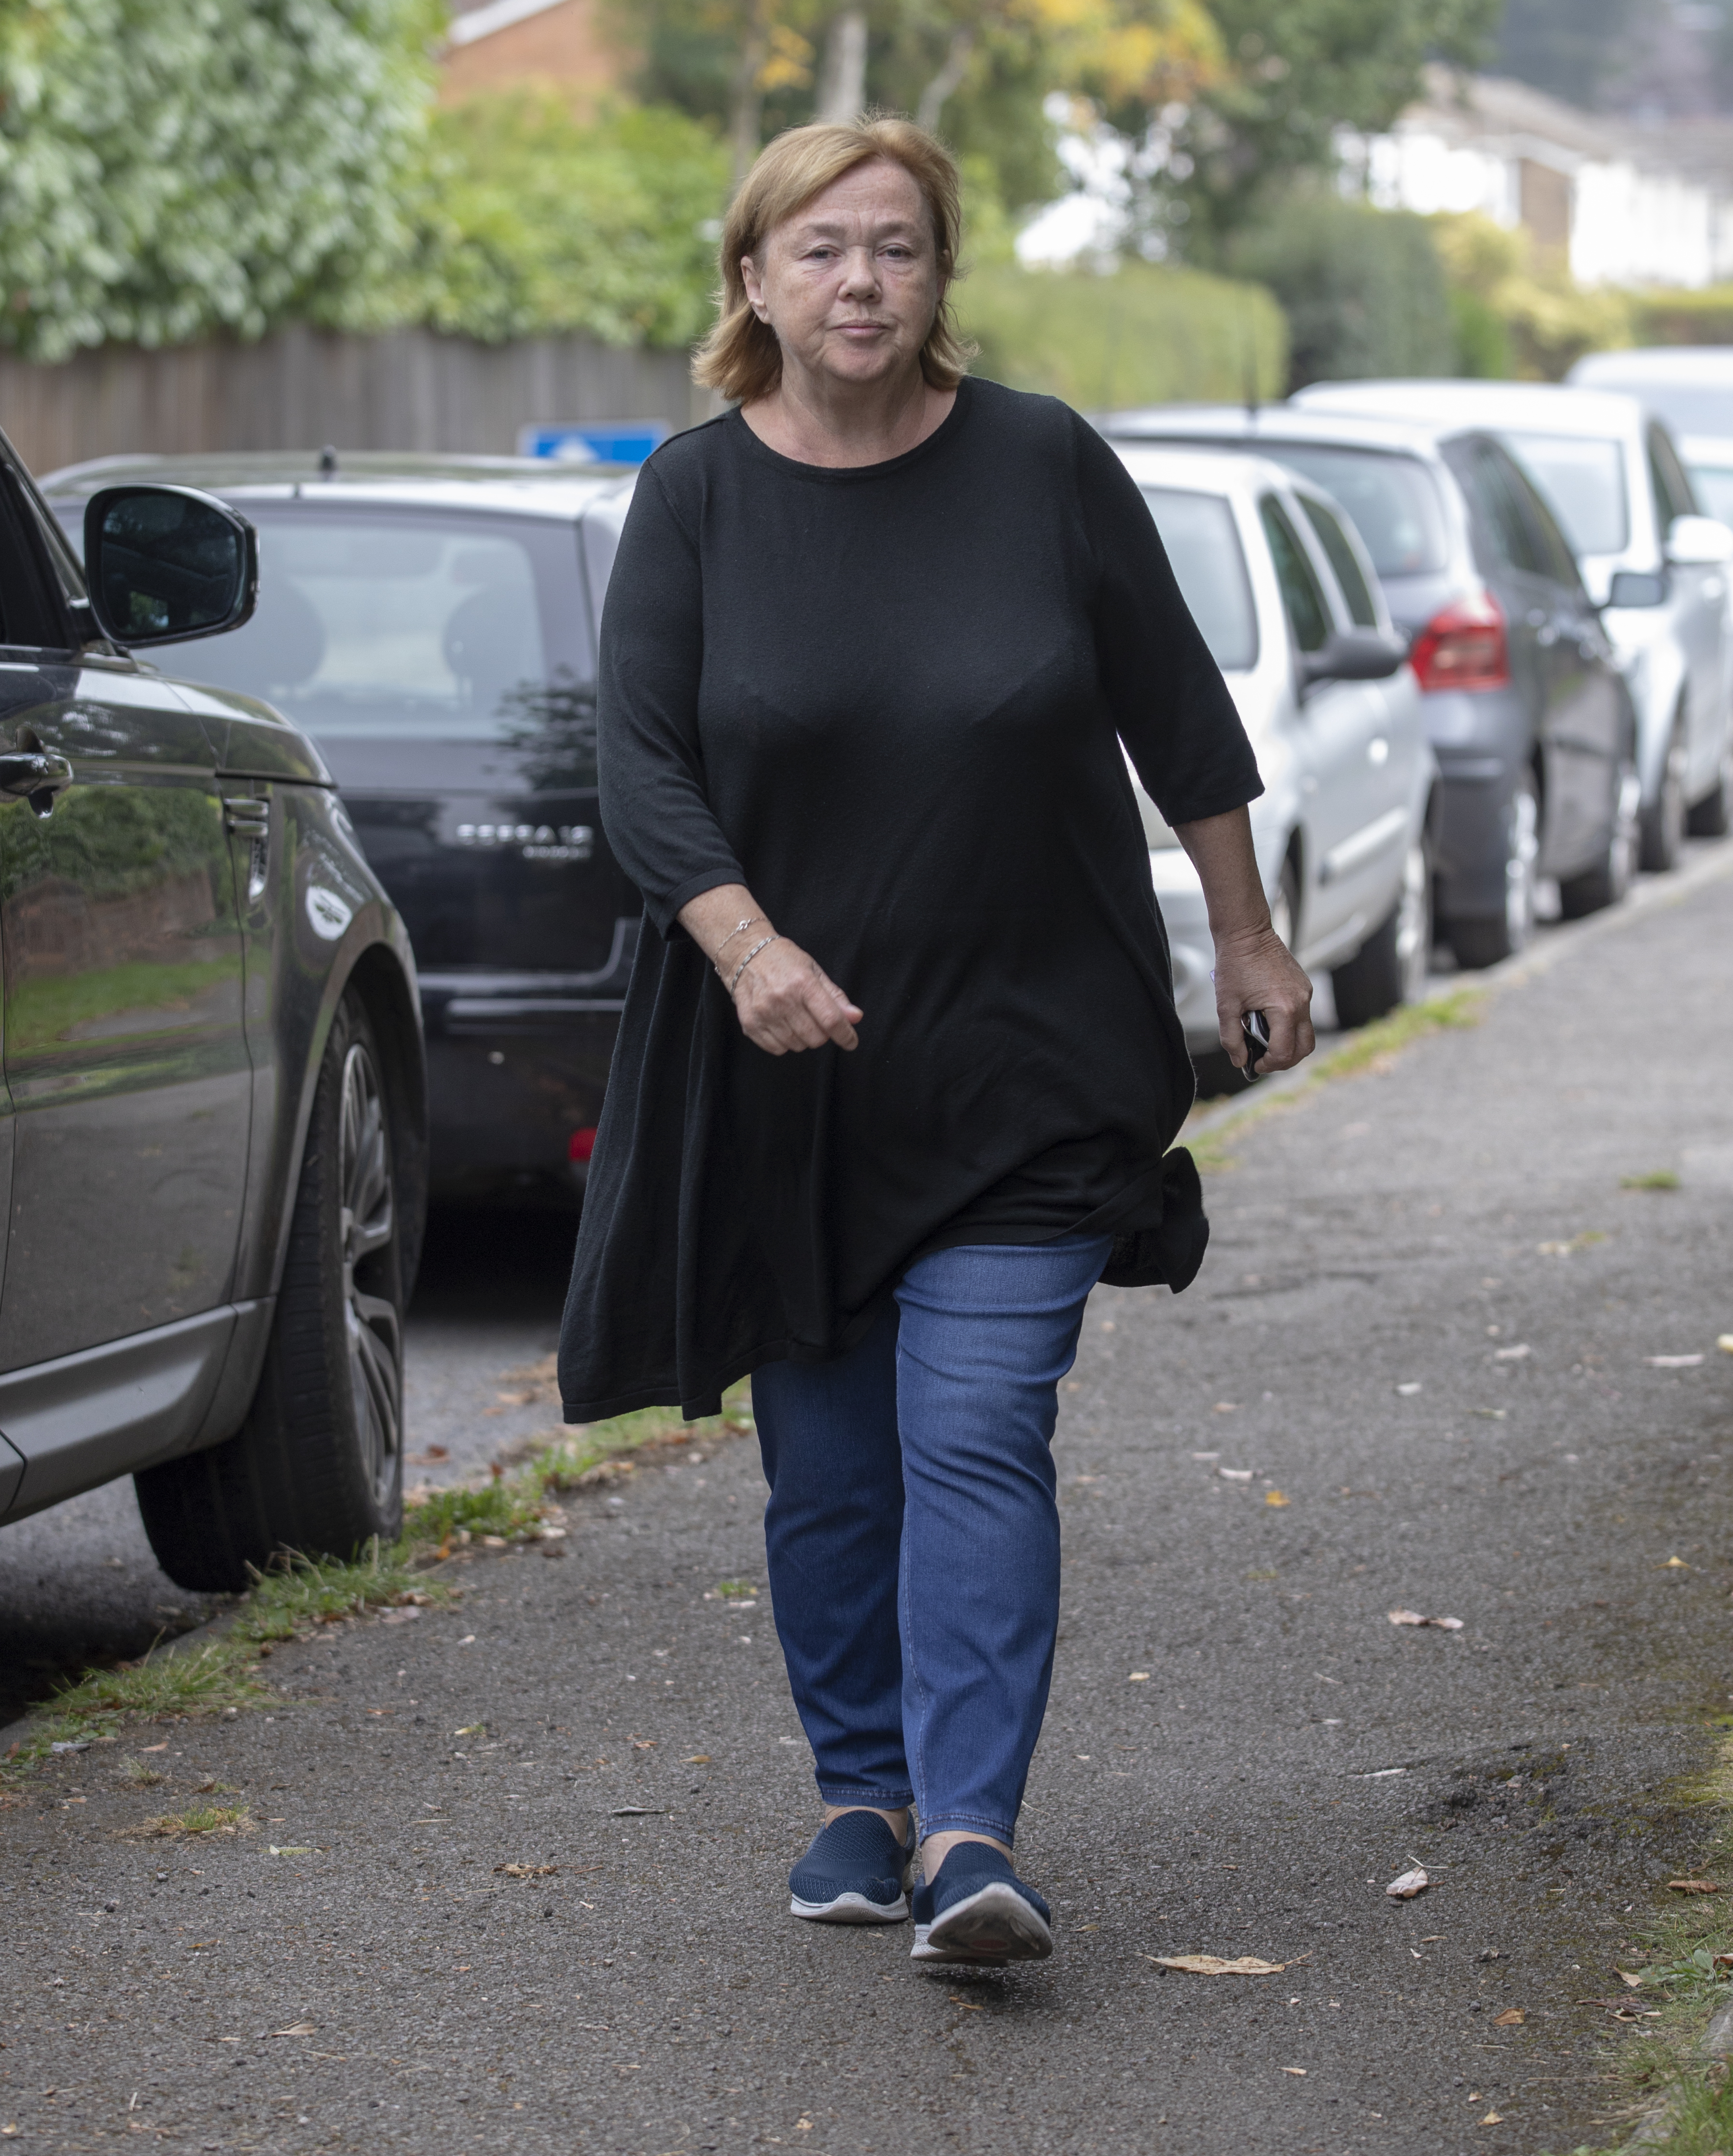 Pauline Quirke out and about near her London home